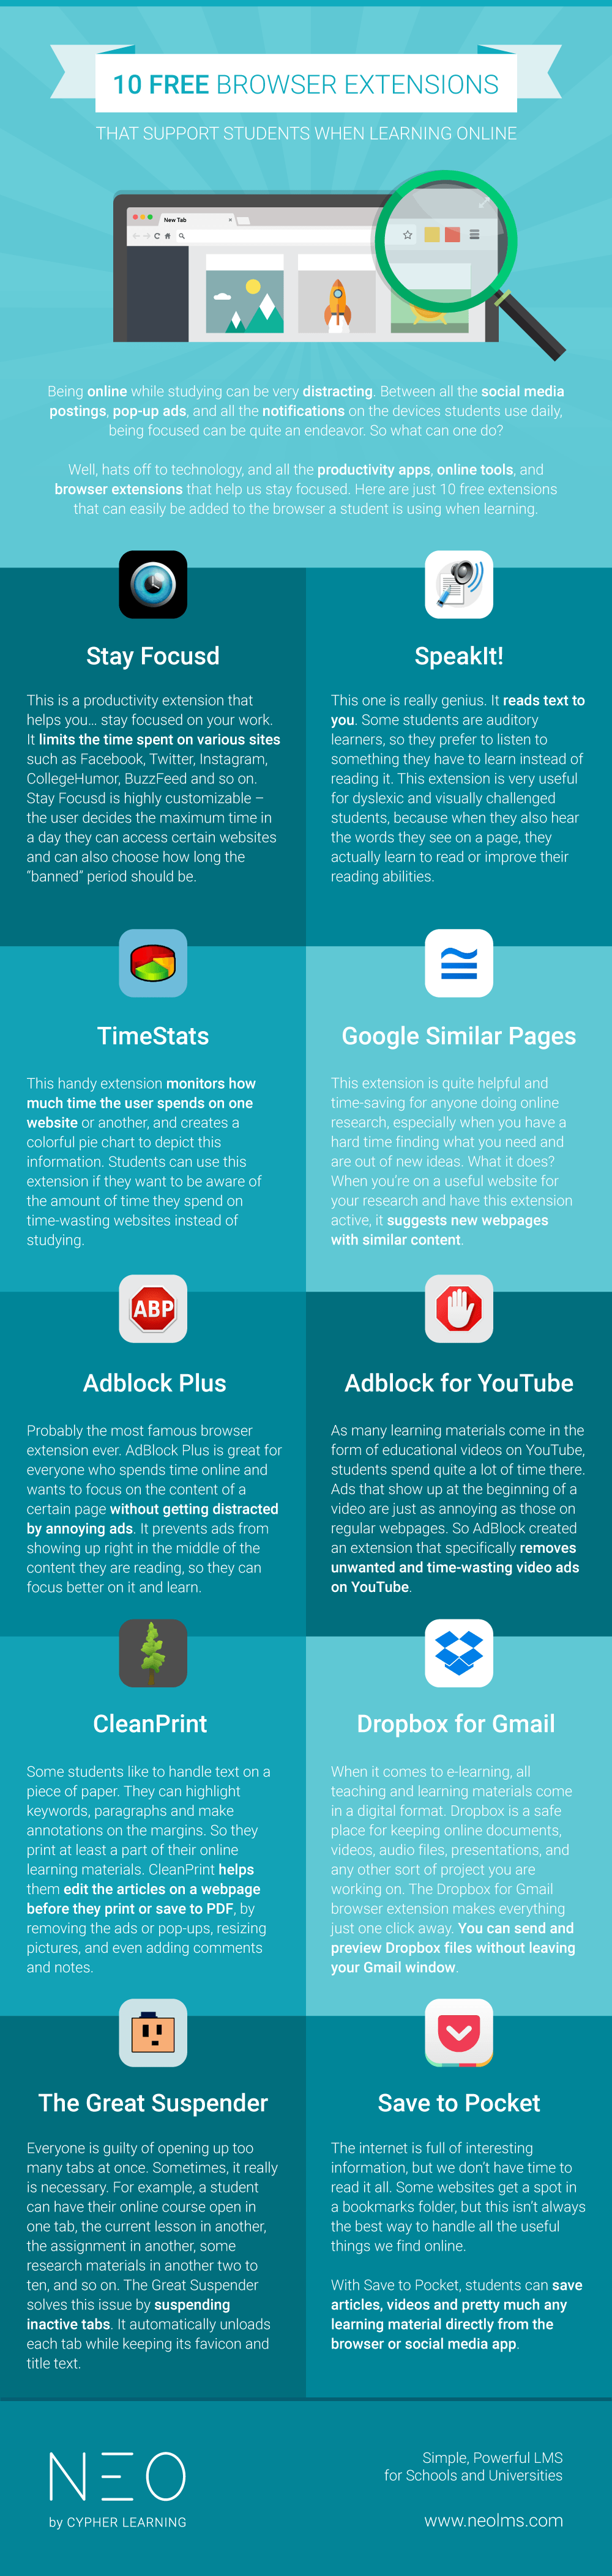 Free Browser Extensions for Online Students Infographic